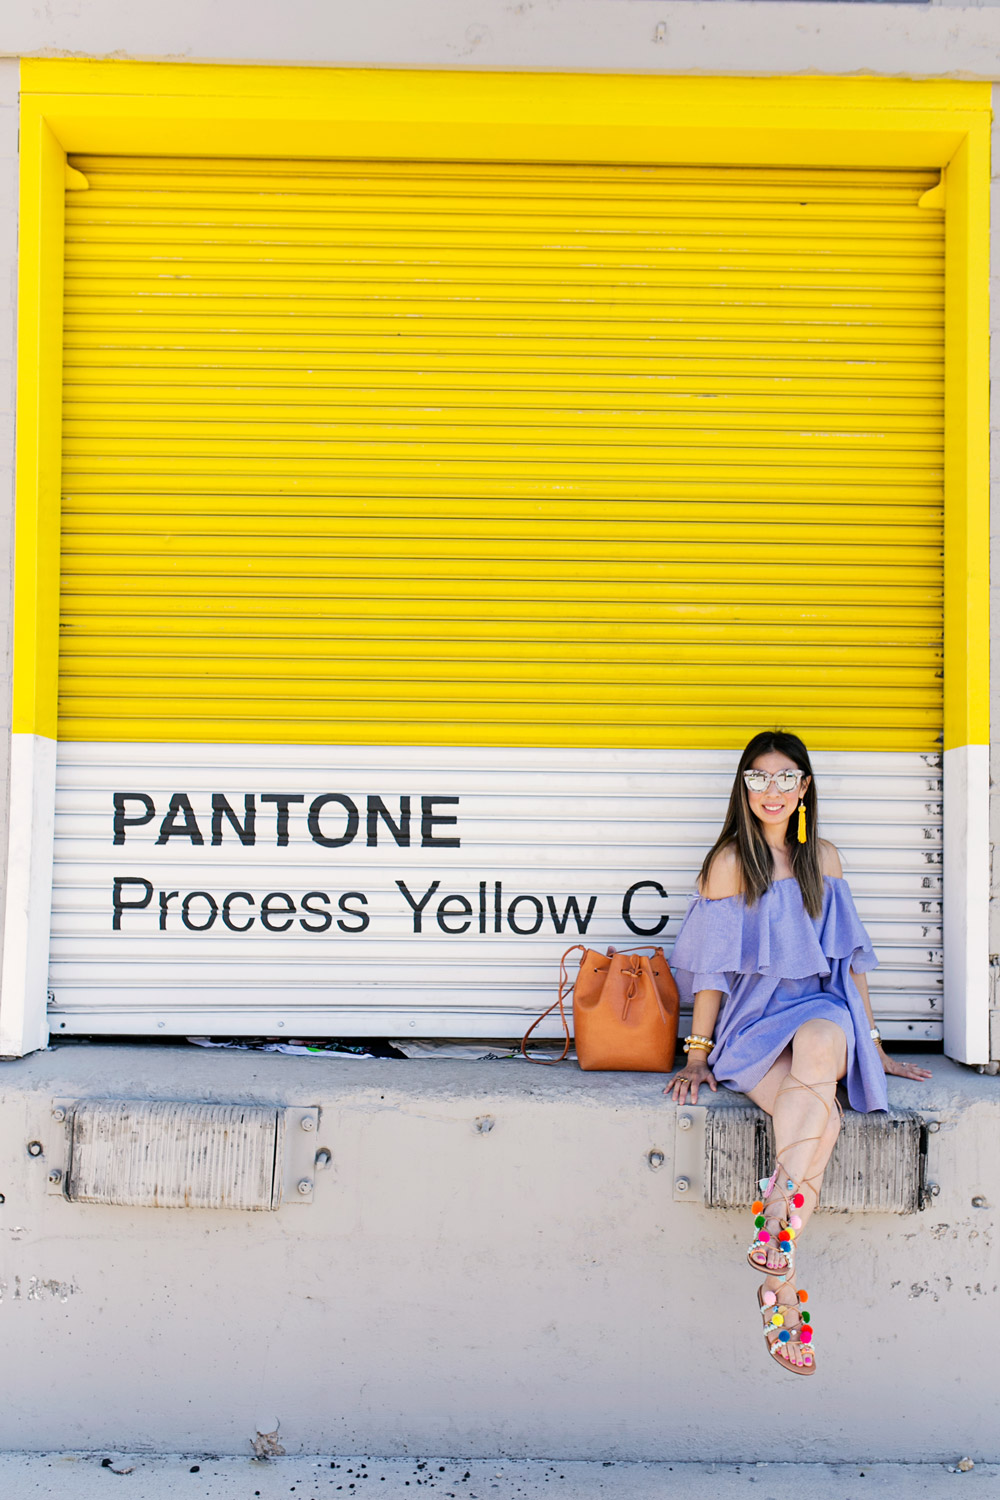 off the shoulder dress with pom pom sandals in front of yellow wall